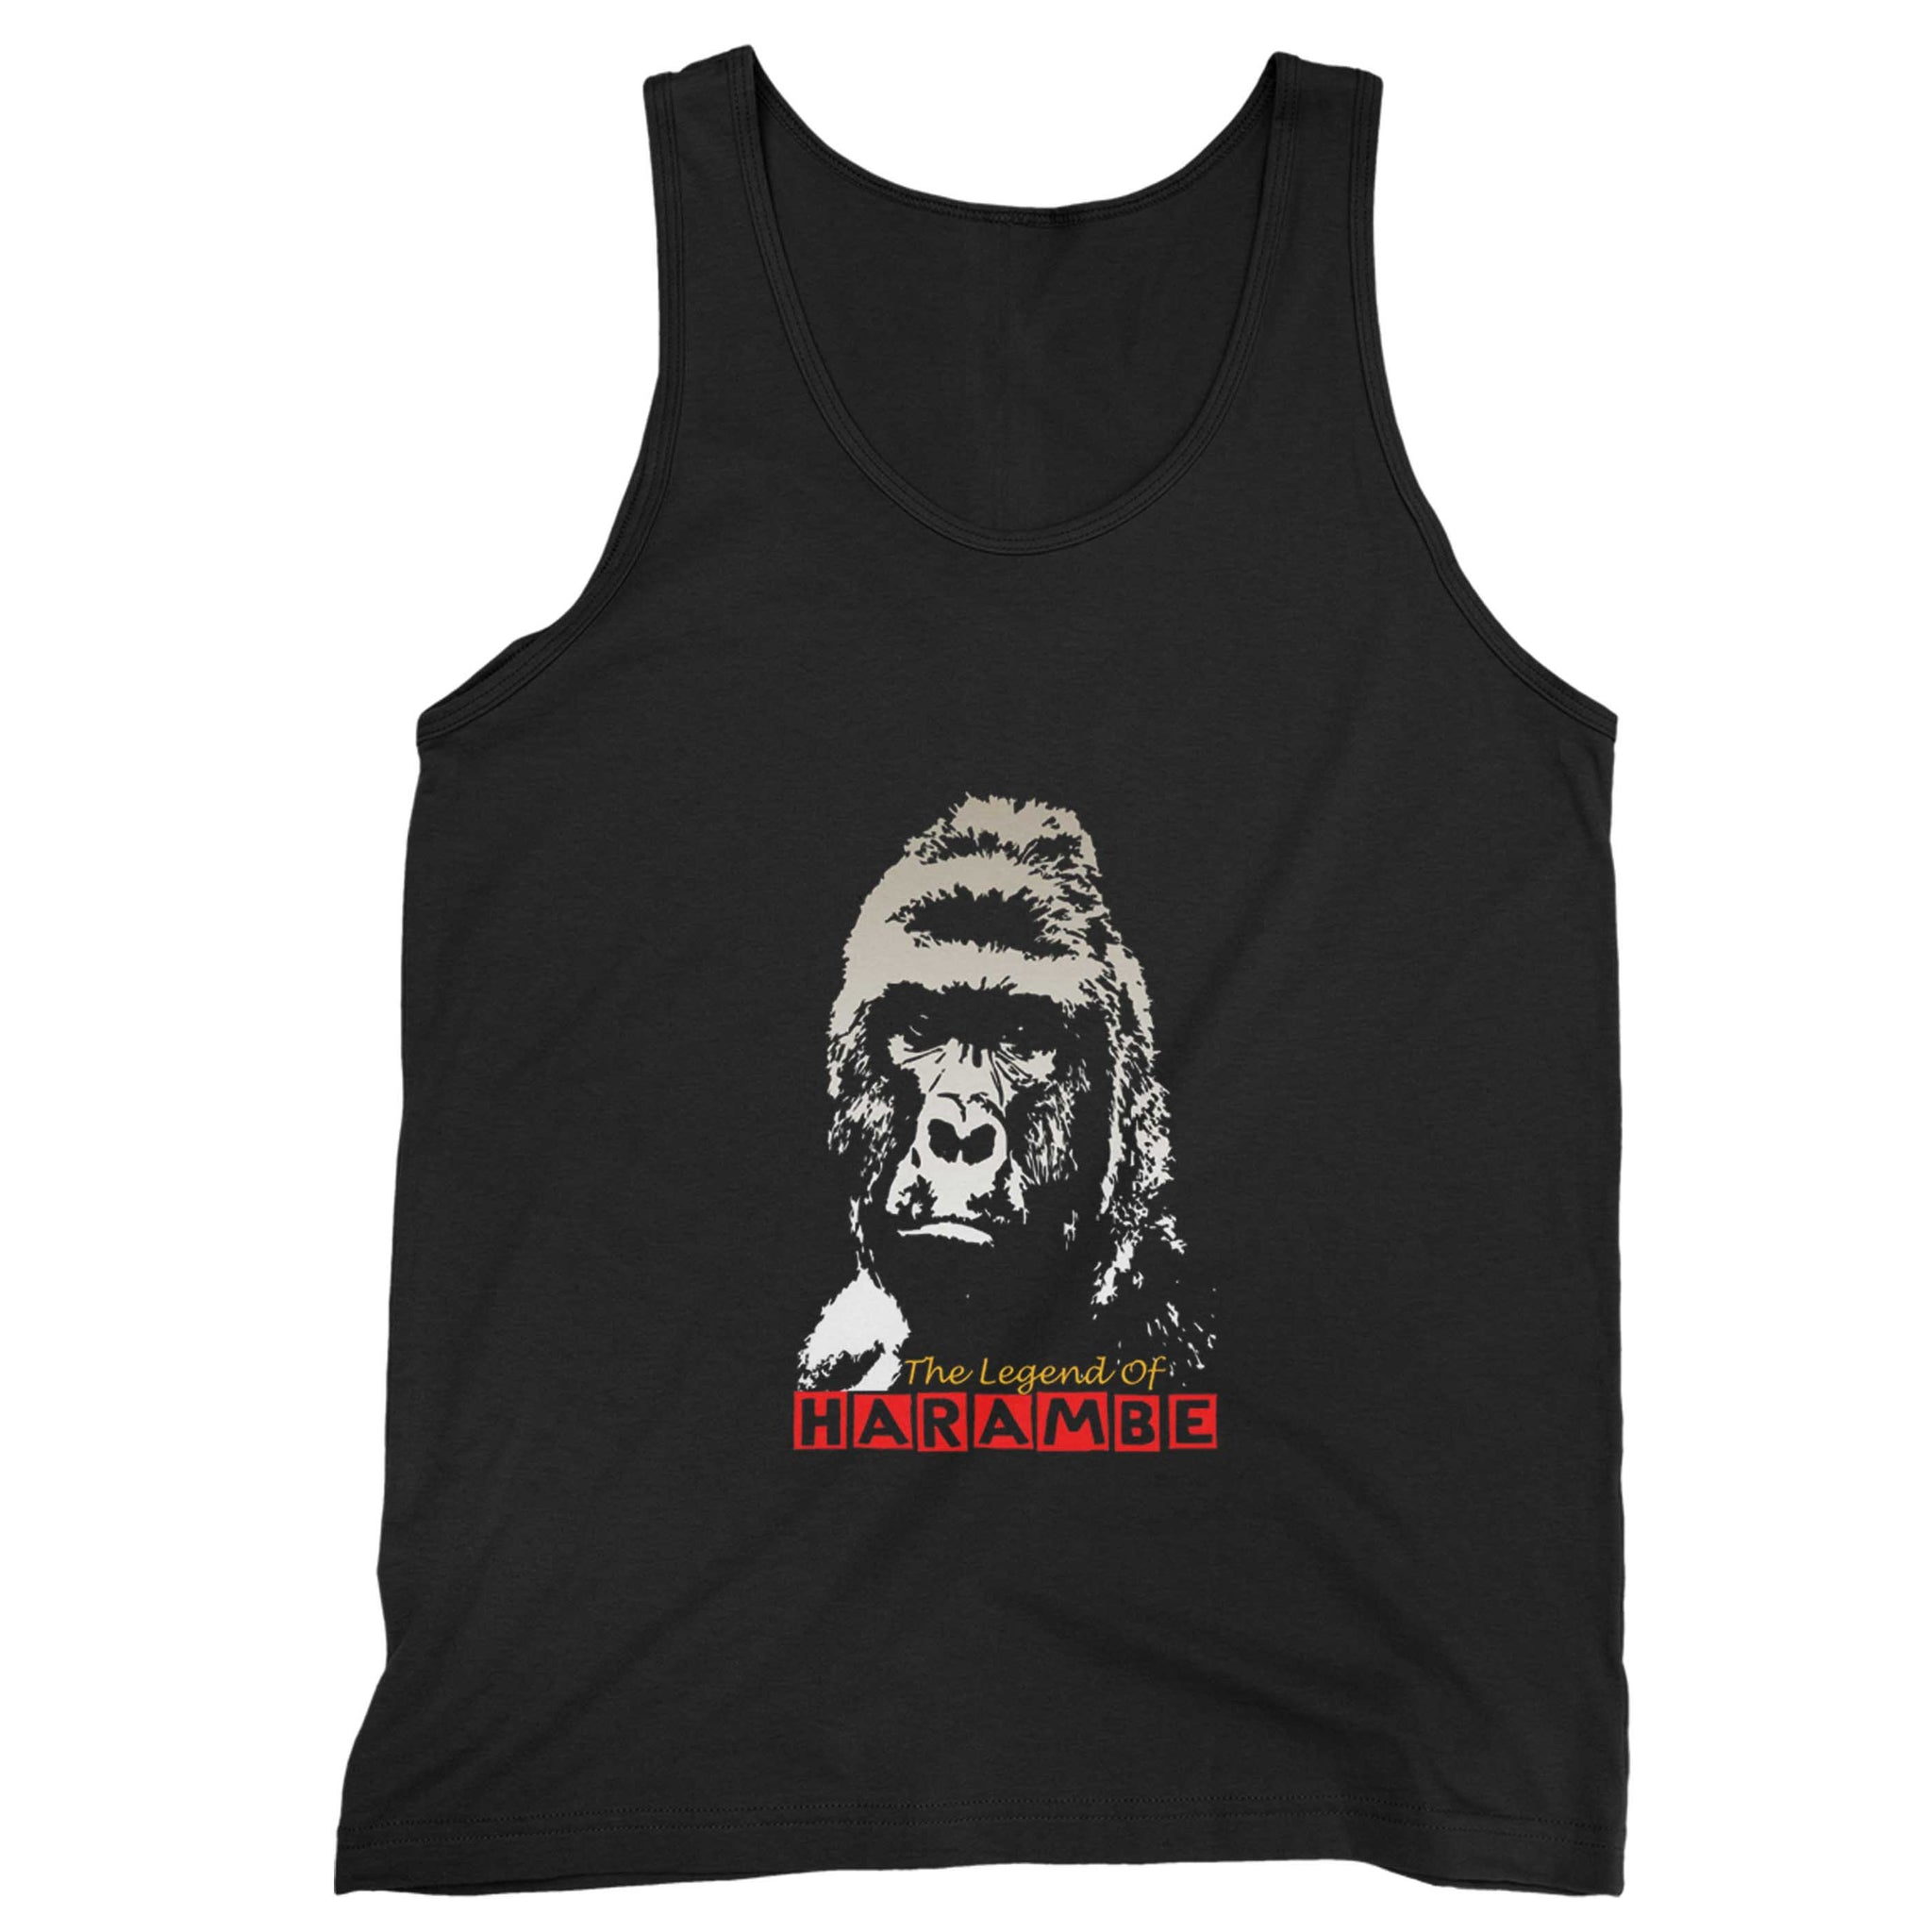 The Legend Of Harambe Man's Tank Top